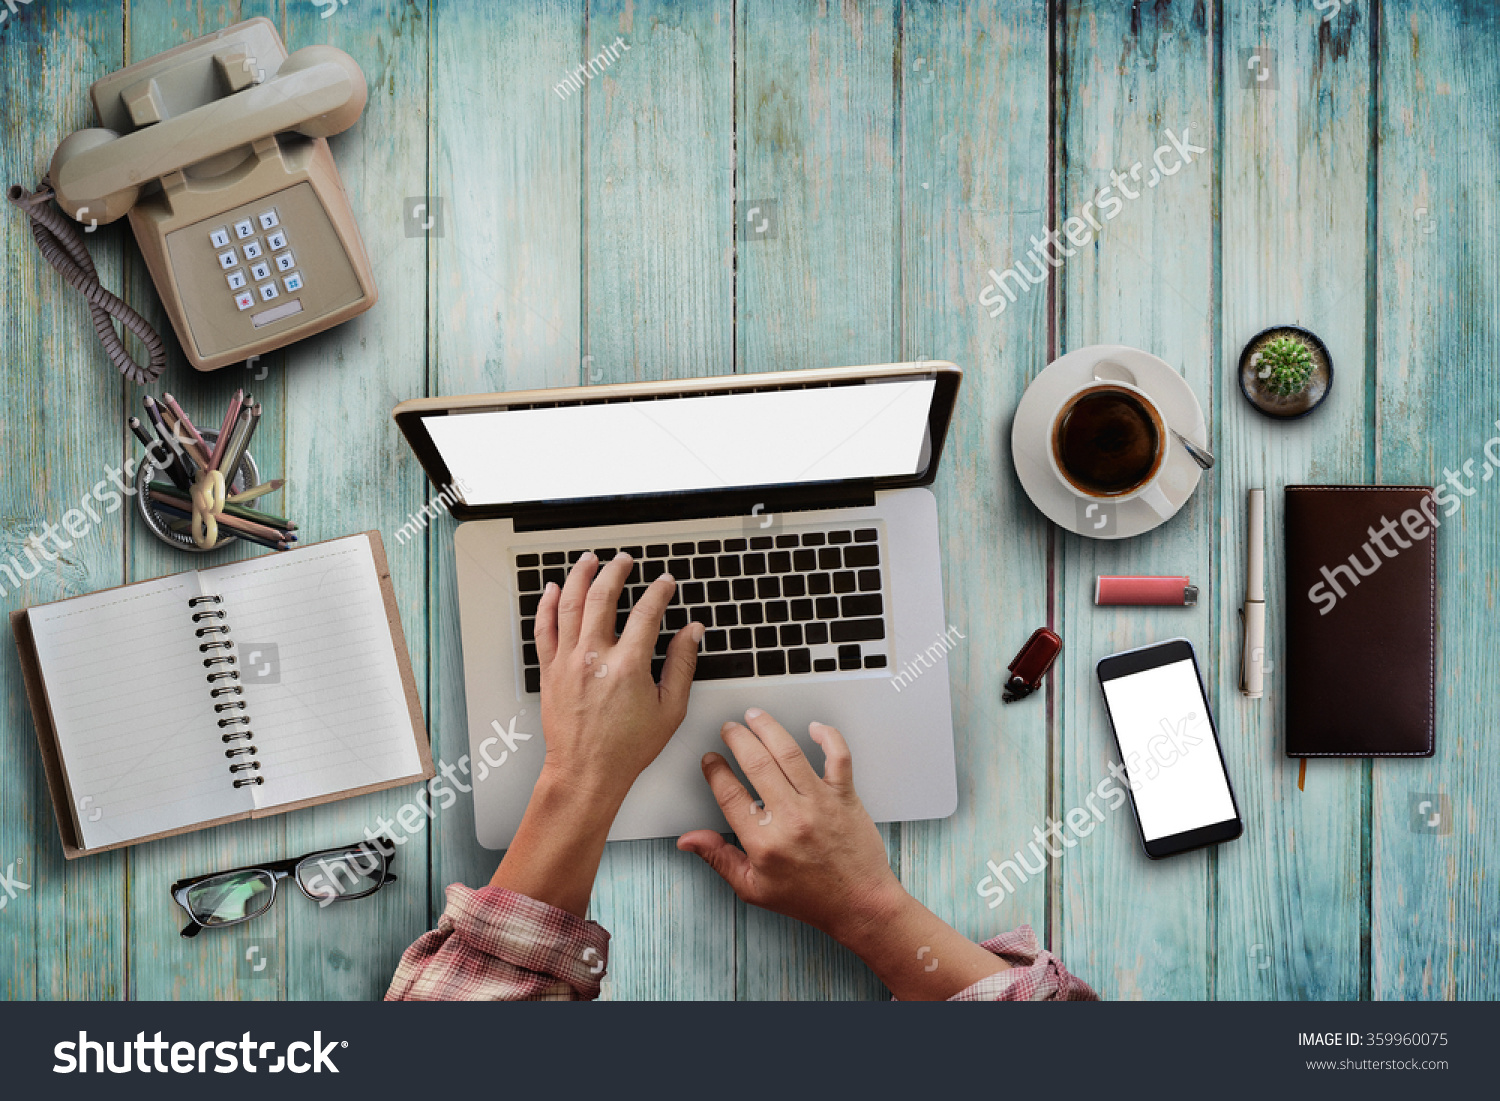 Merveilleux Top View Of Male Hipster Hands Working With Laptop ,office Supplies And  Gadgets On Vintage